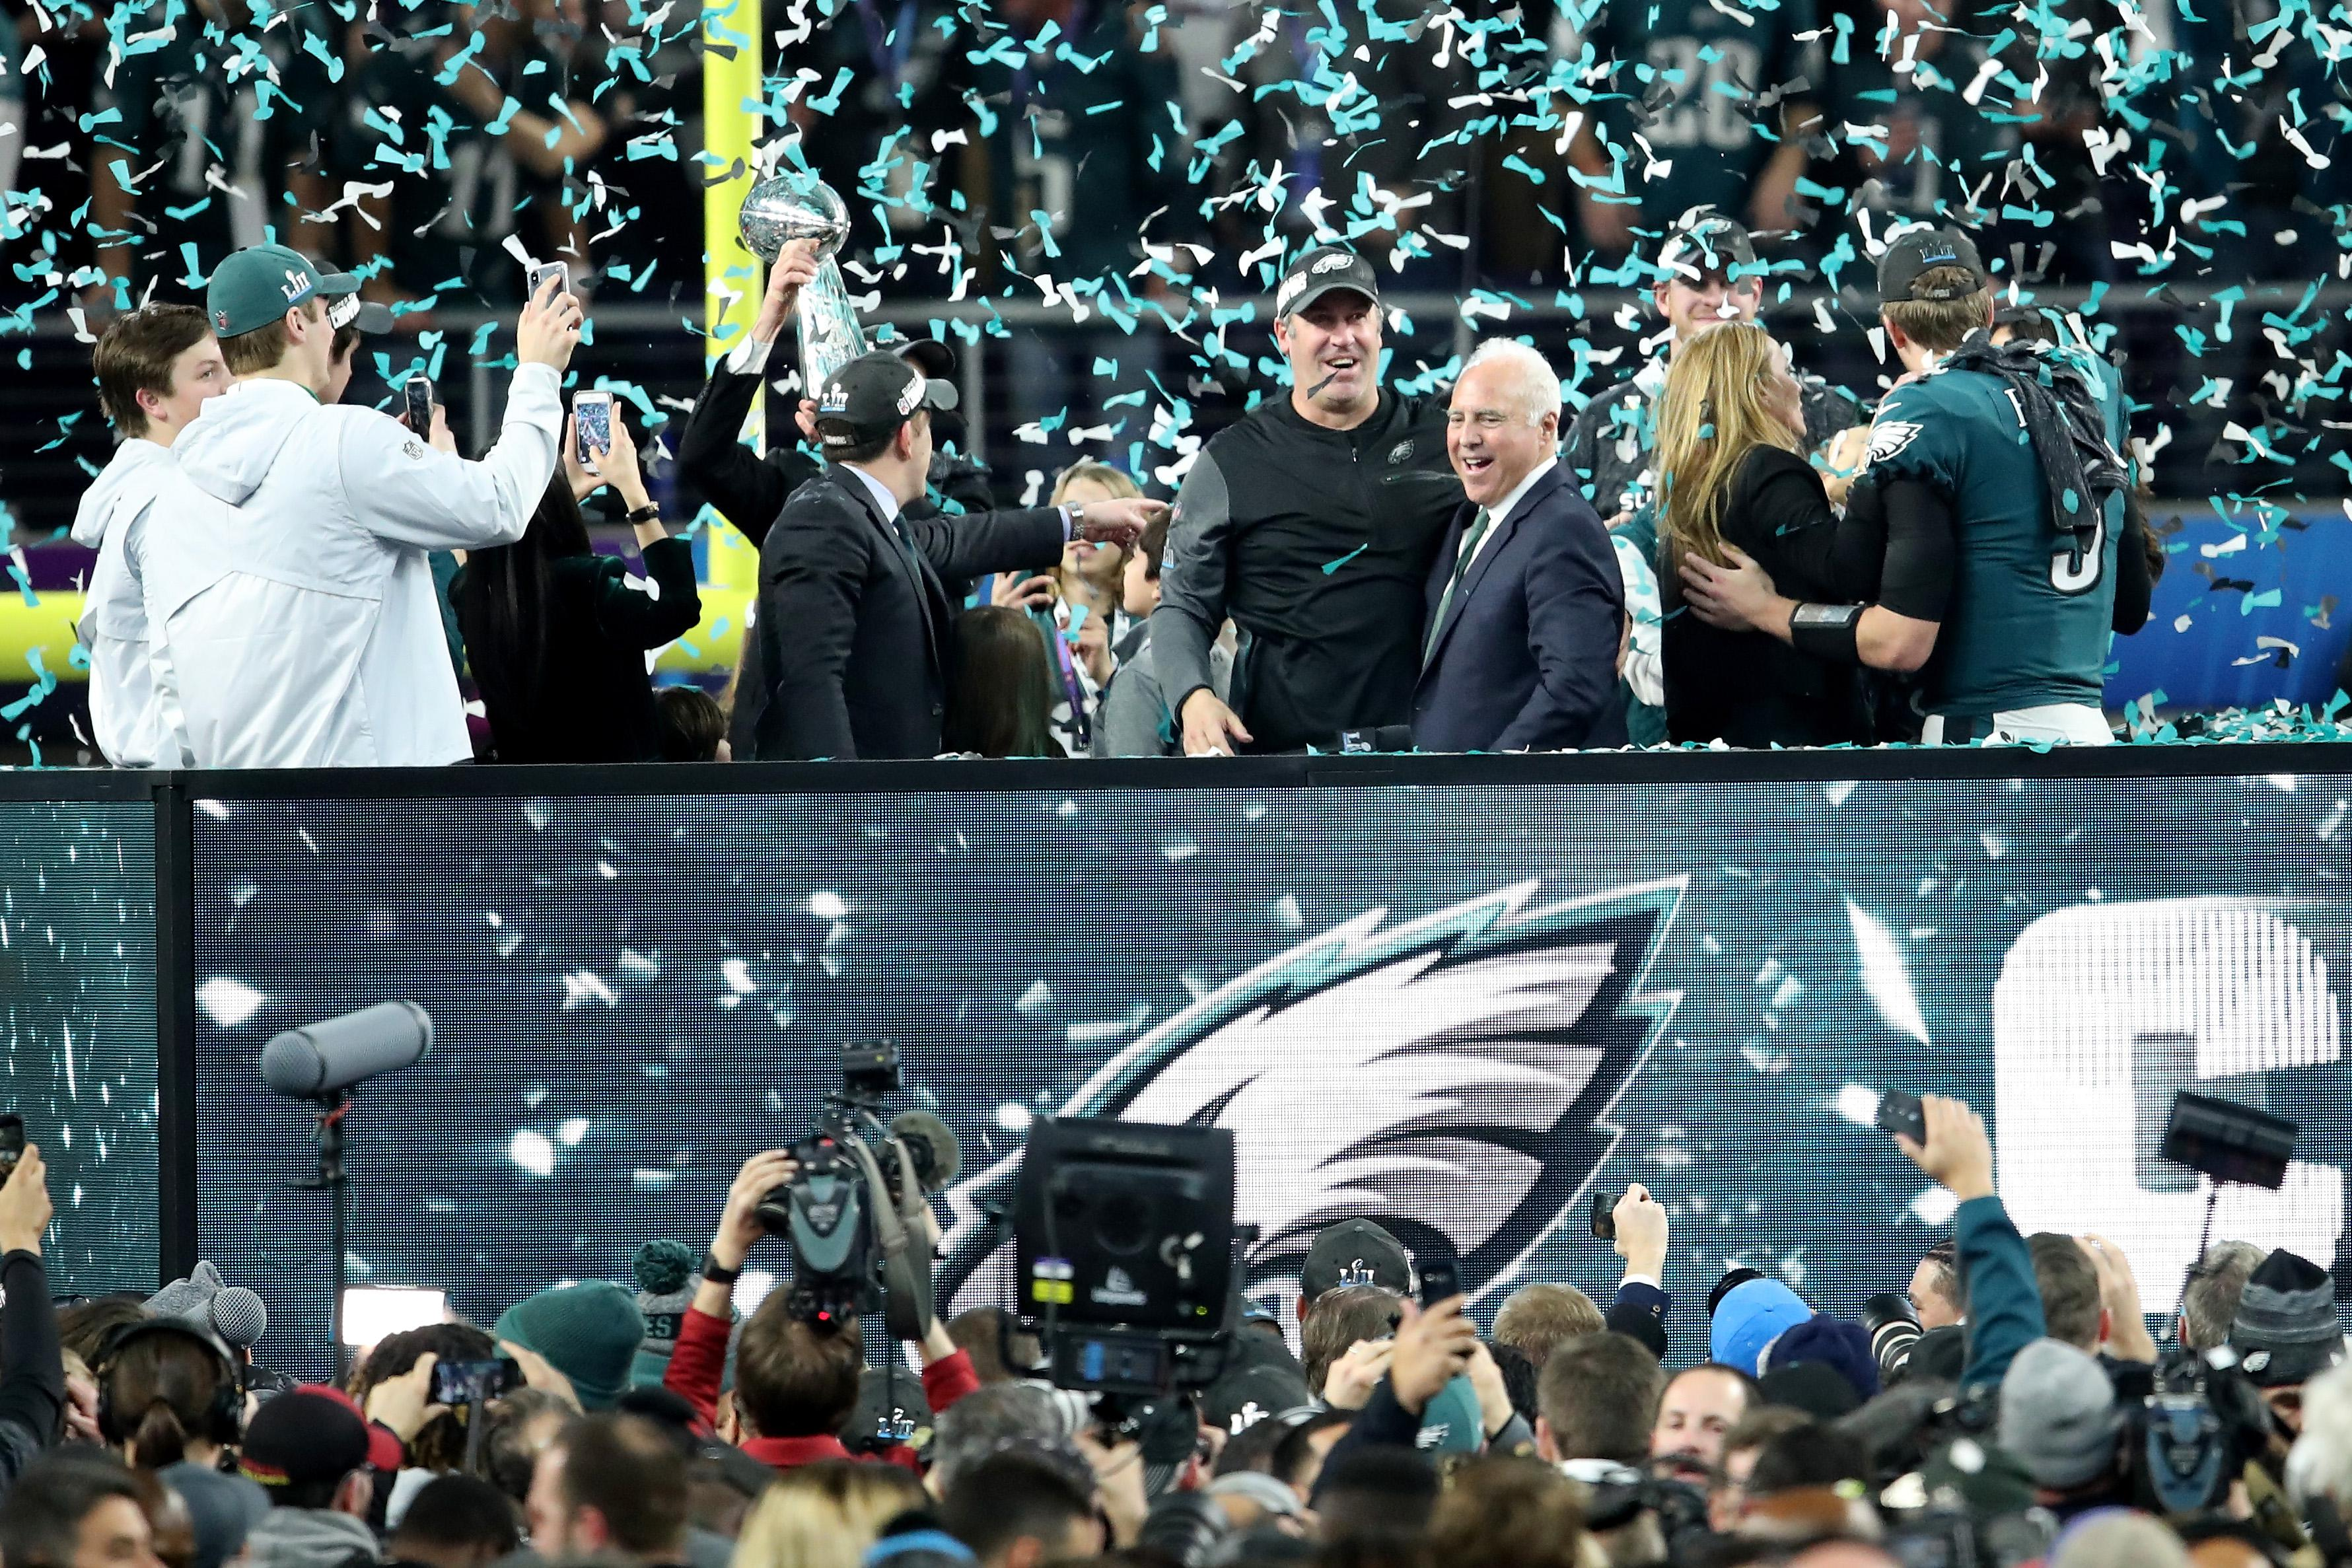 Philadelphia were victorious in Super Bowl 52 at US Bank Stadium